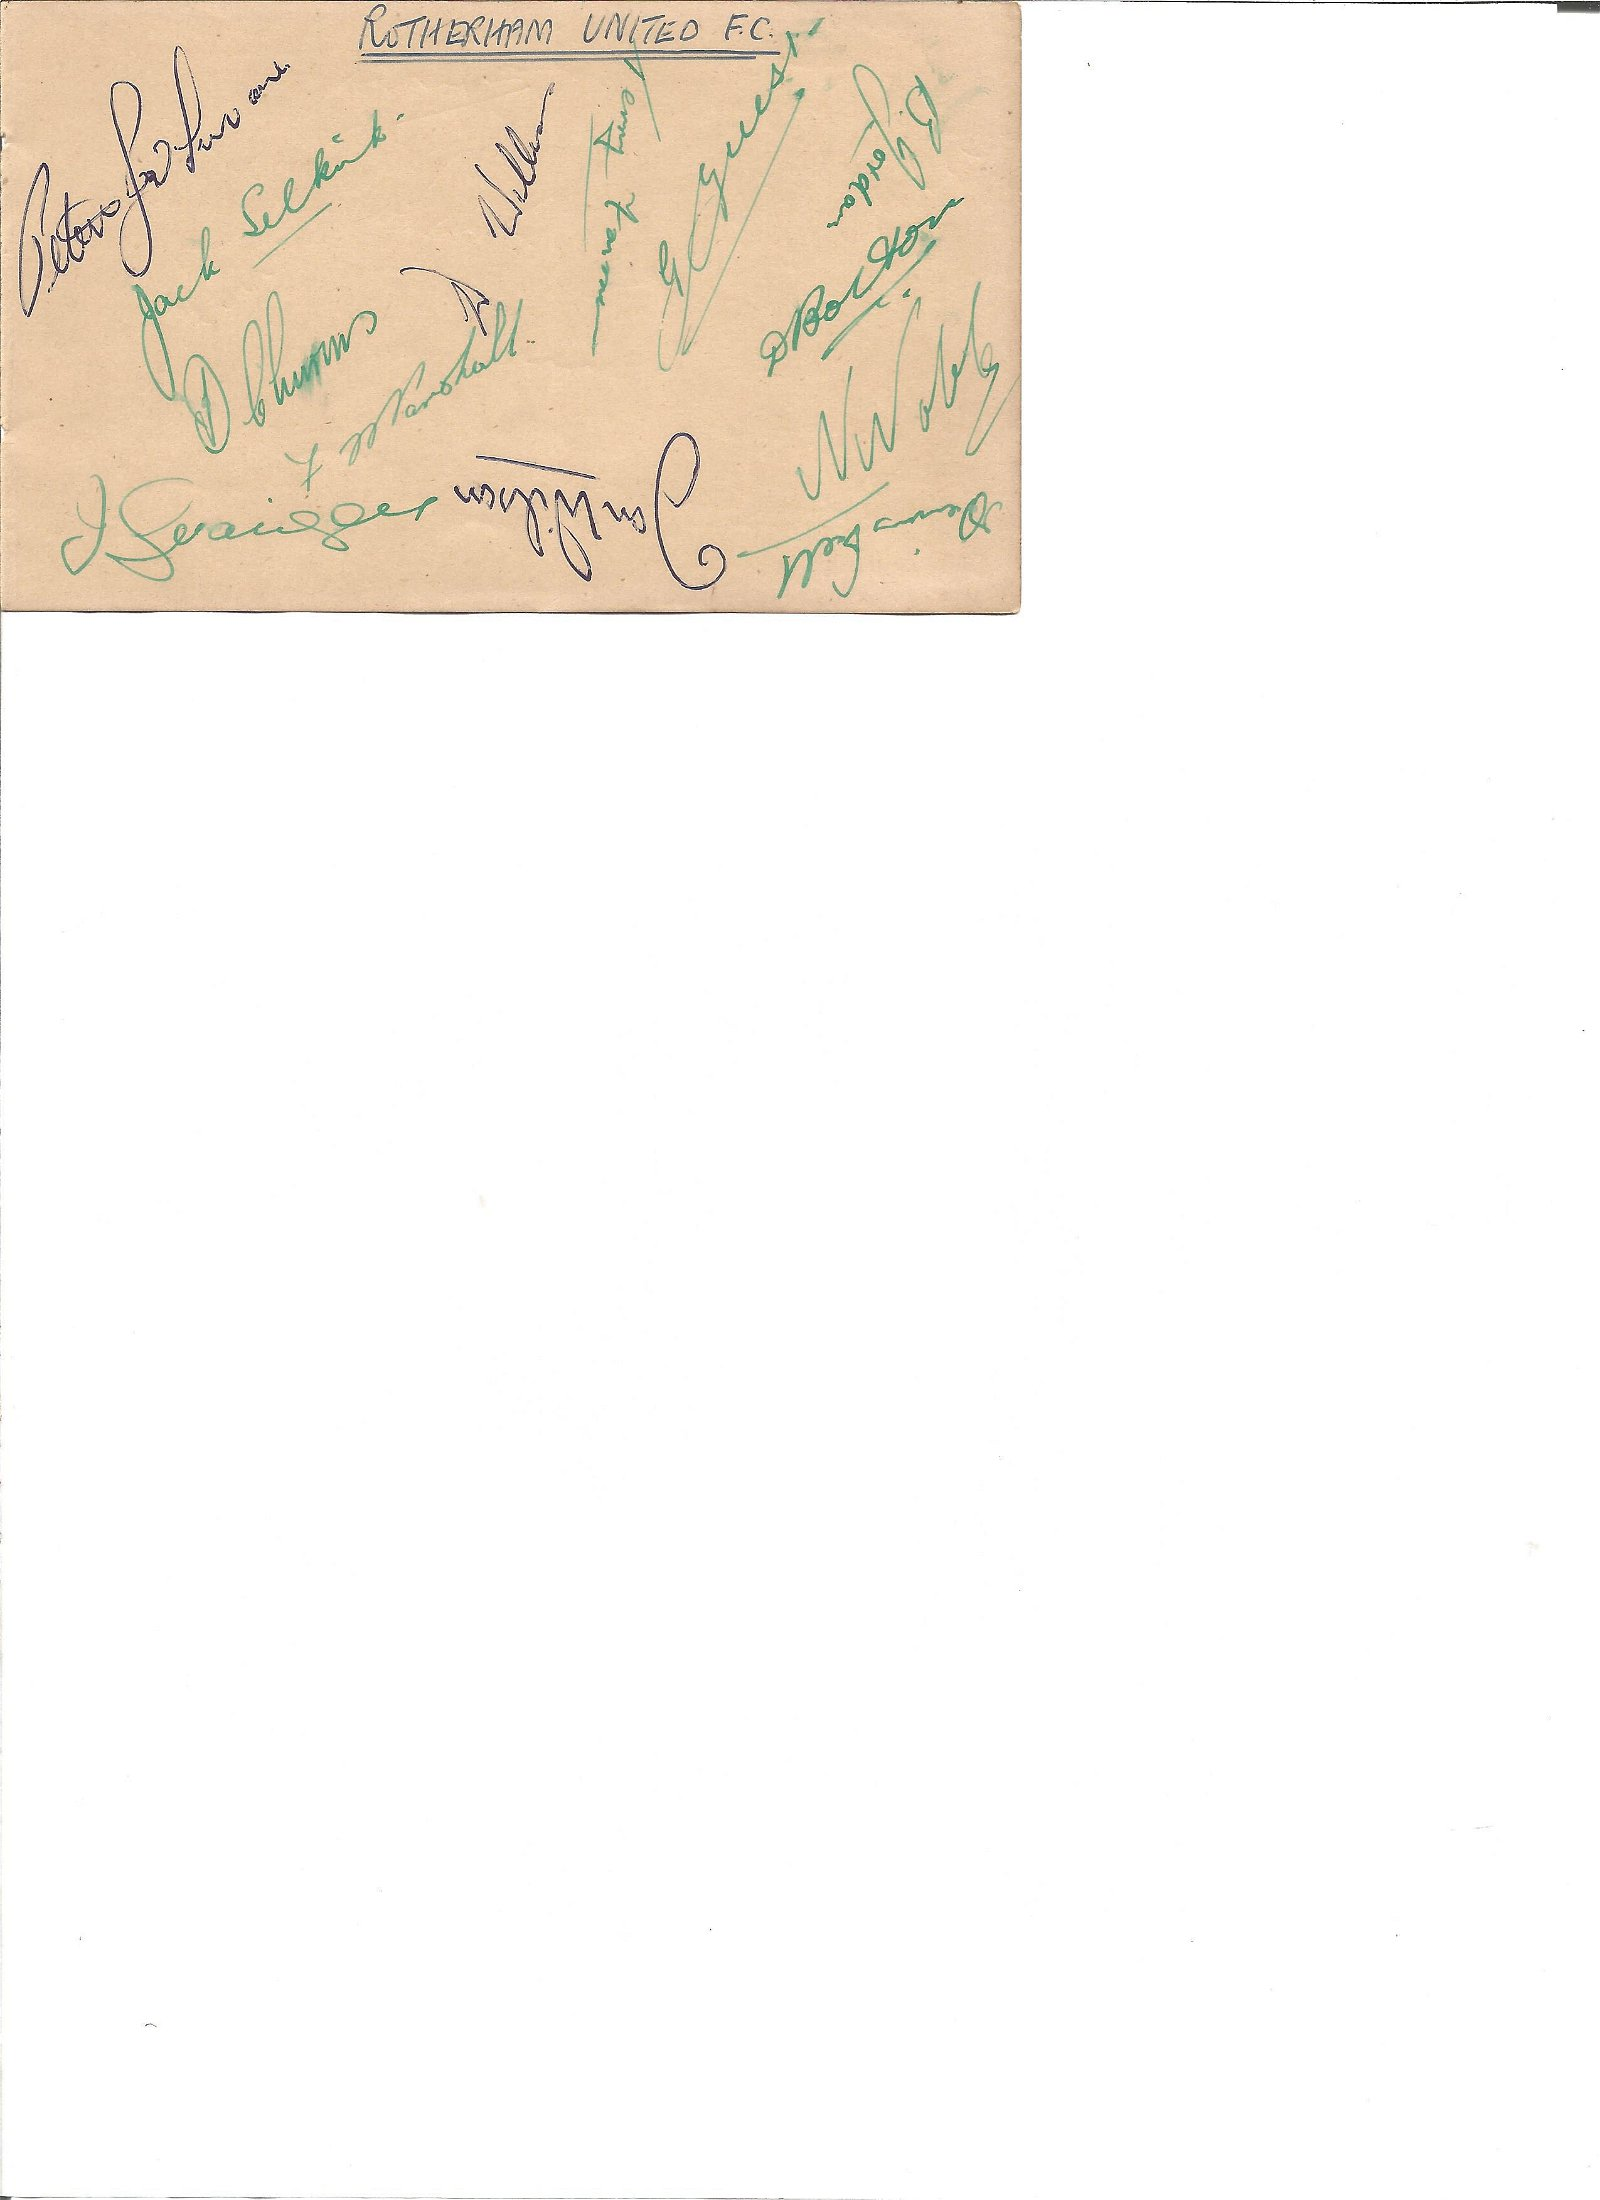 1950's Rotherham Utd signed album page. Signed by 13